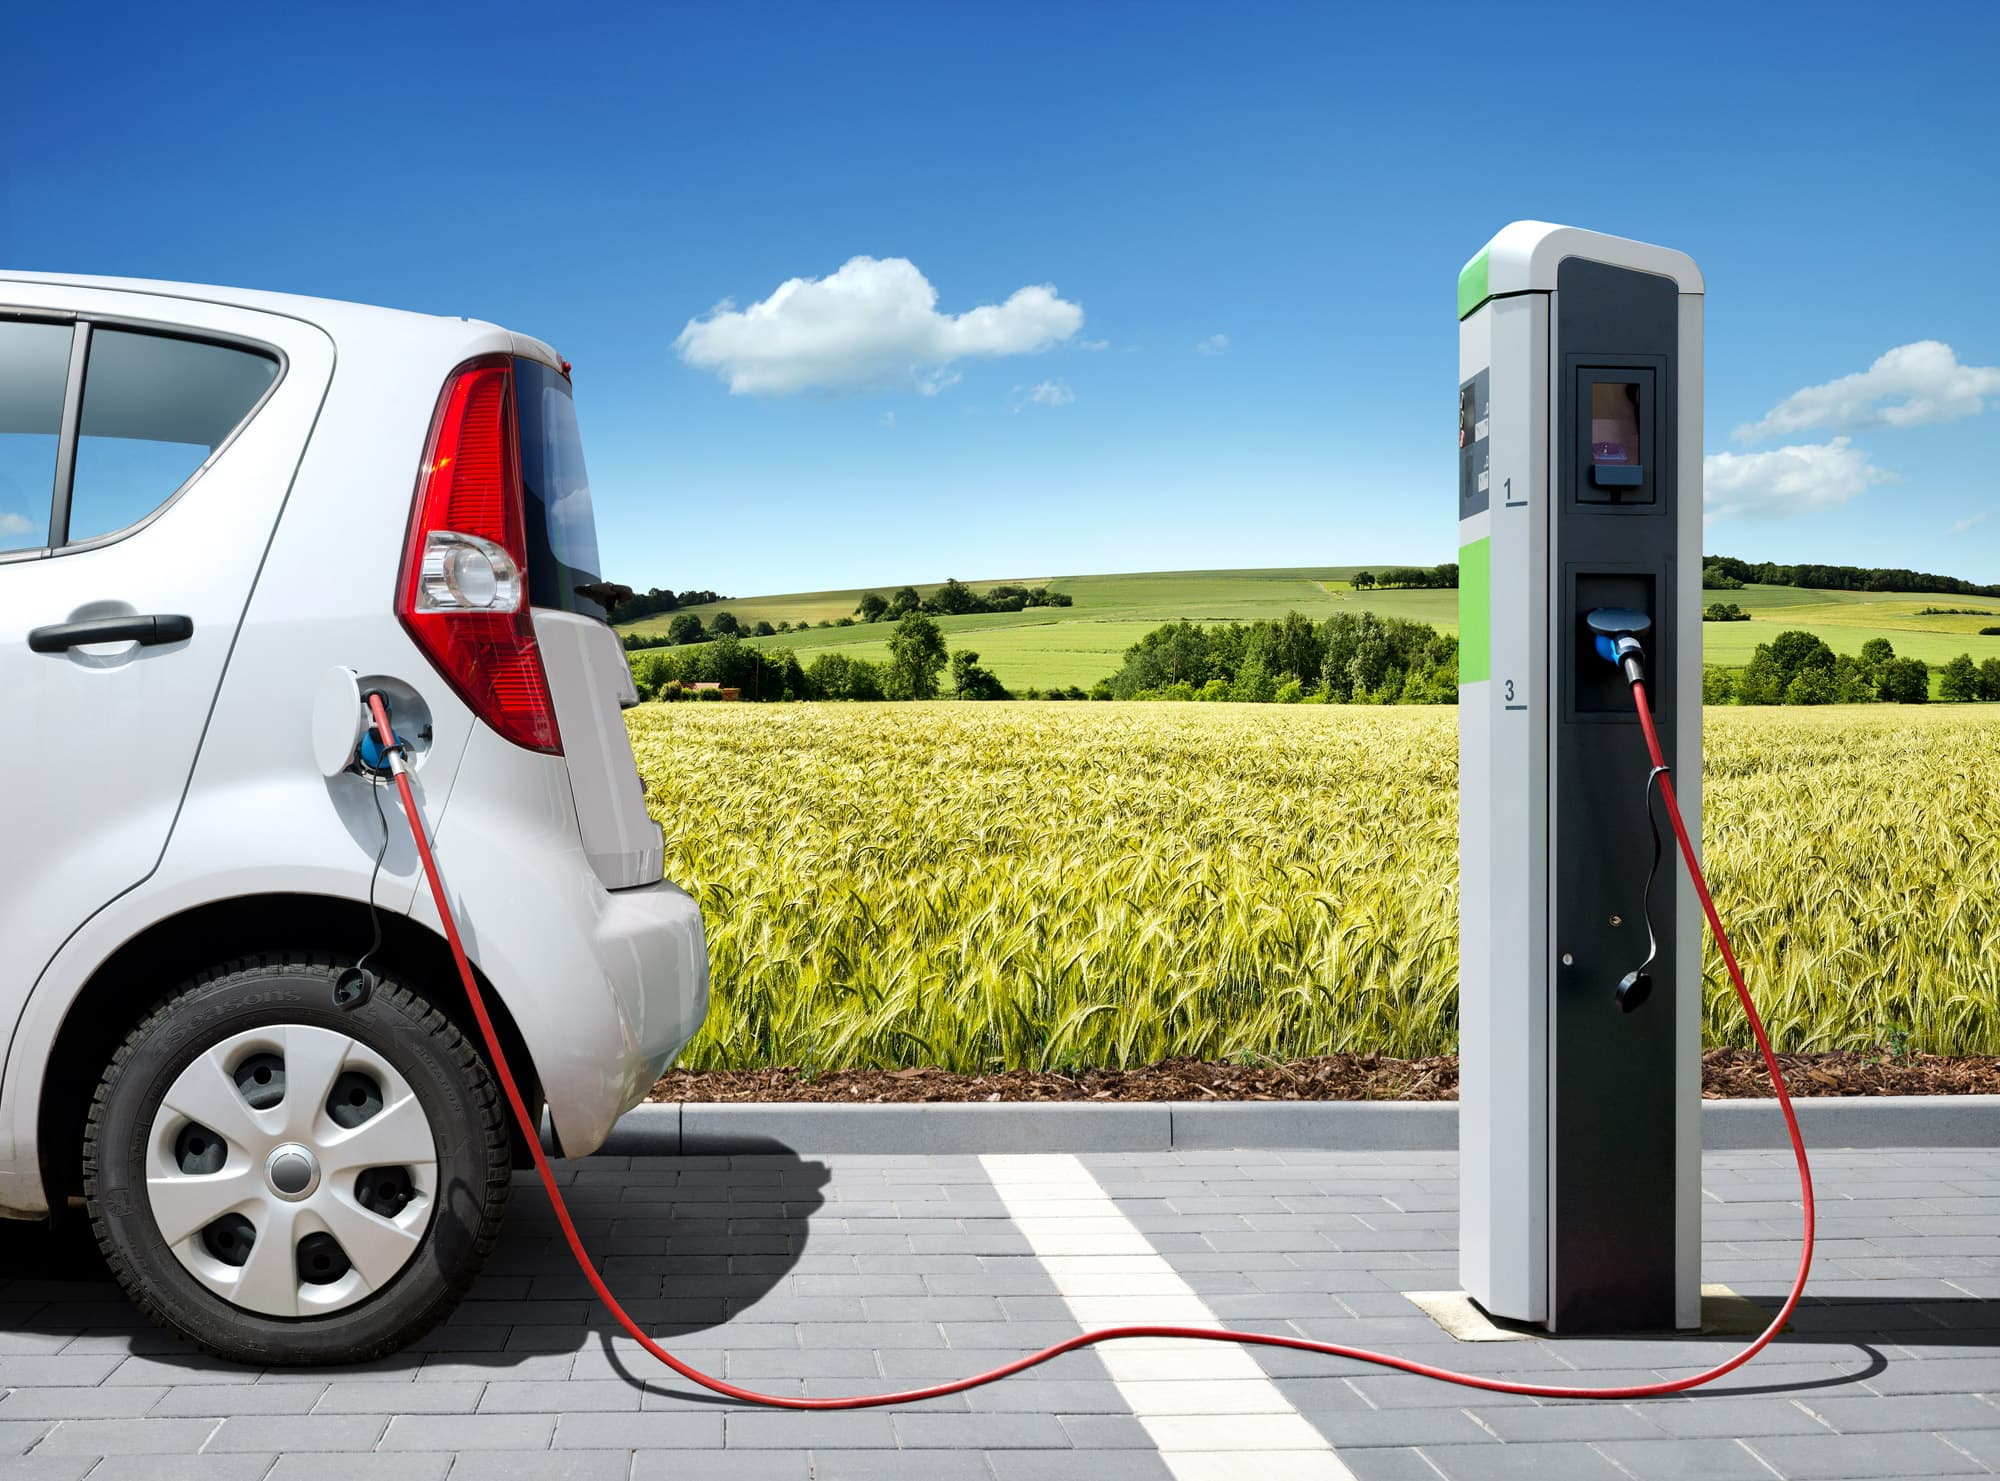 jsw group reveals intentions to make electric cars in india: report